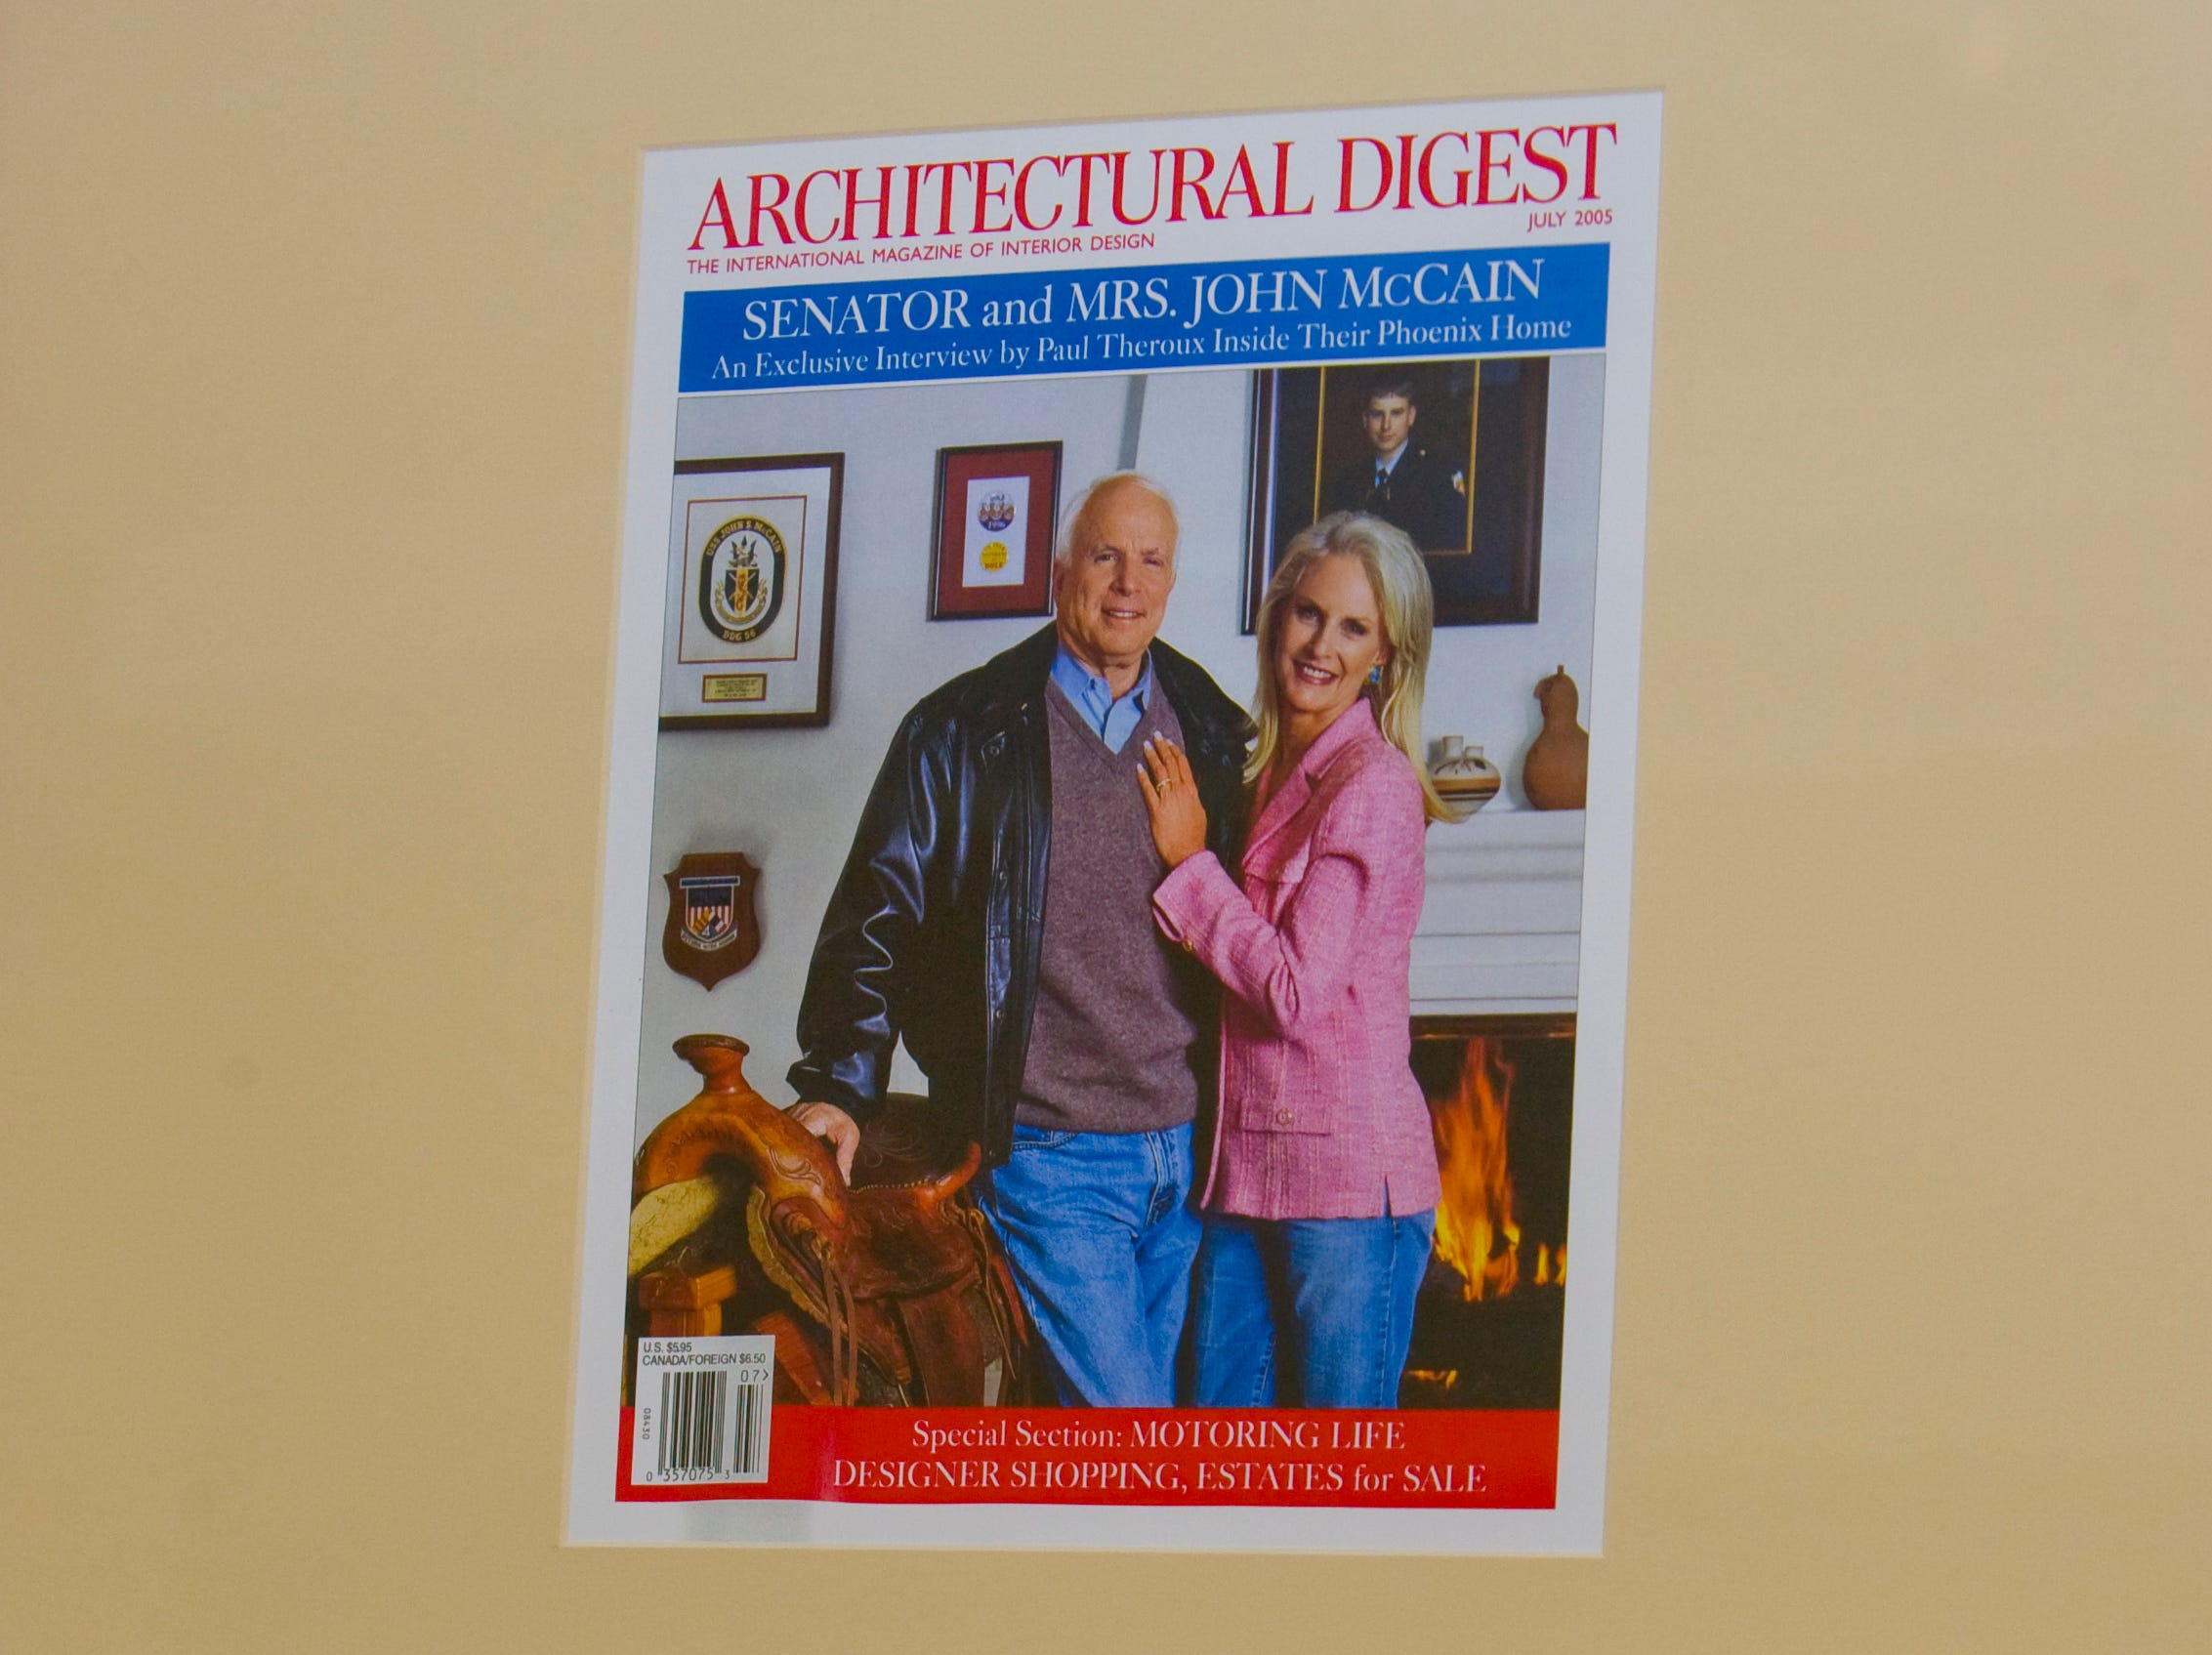 A magazine article featuring  the former home of  John and Cindy McCain is framed and seen in a backyard utility room in 2008.